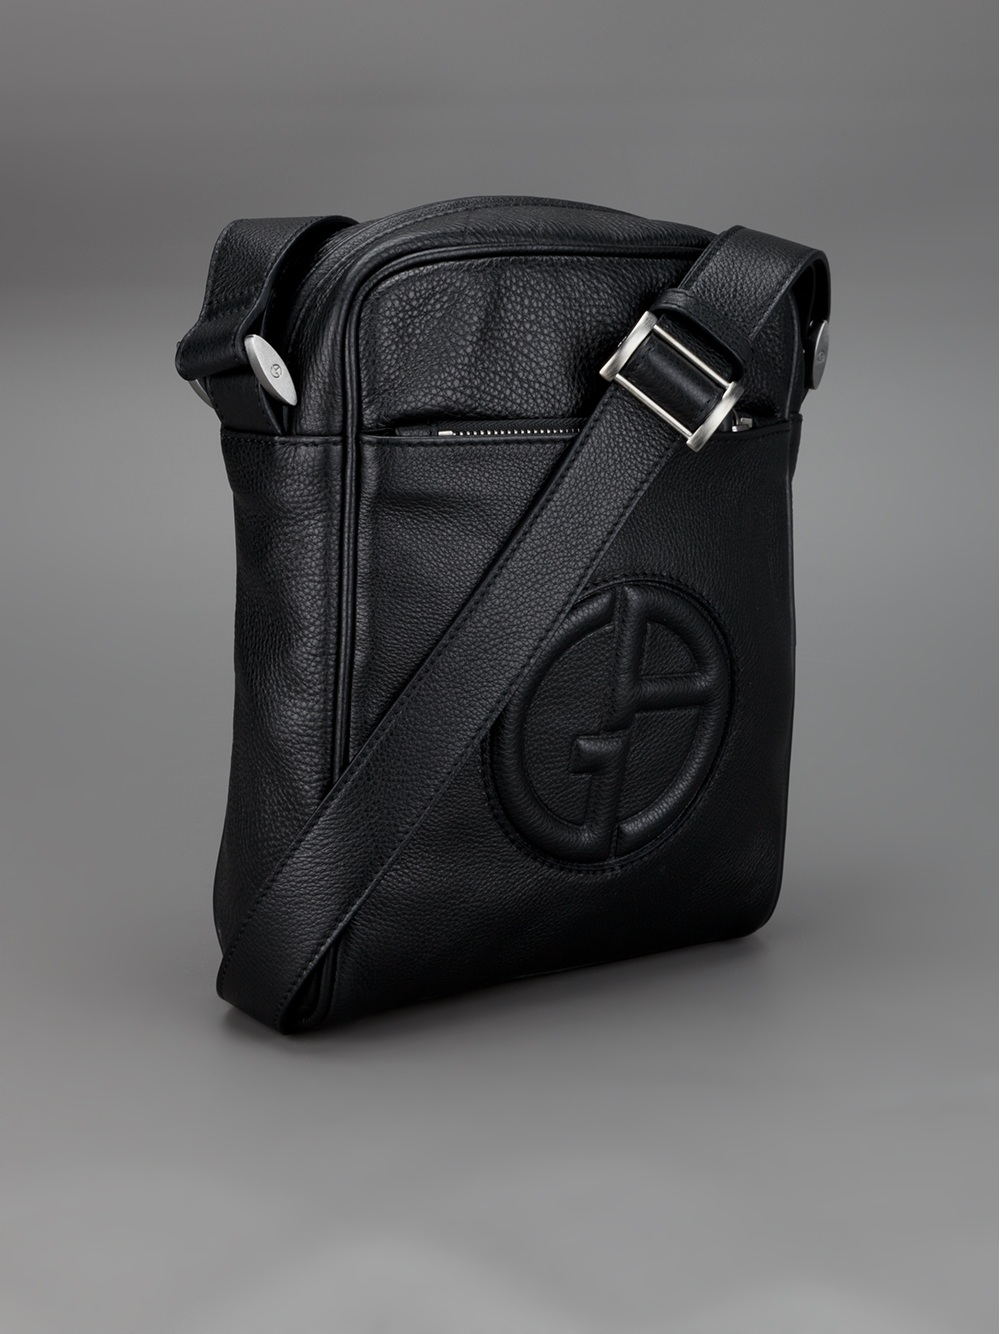 b05540f4ed51 Lyst - Giorgio Armani Raised Logo Messenger Bag in Black for Men